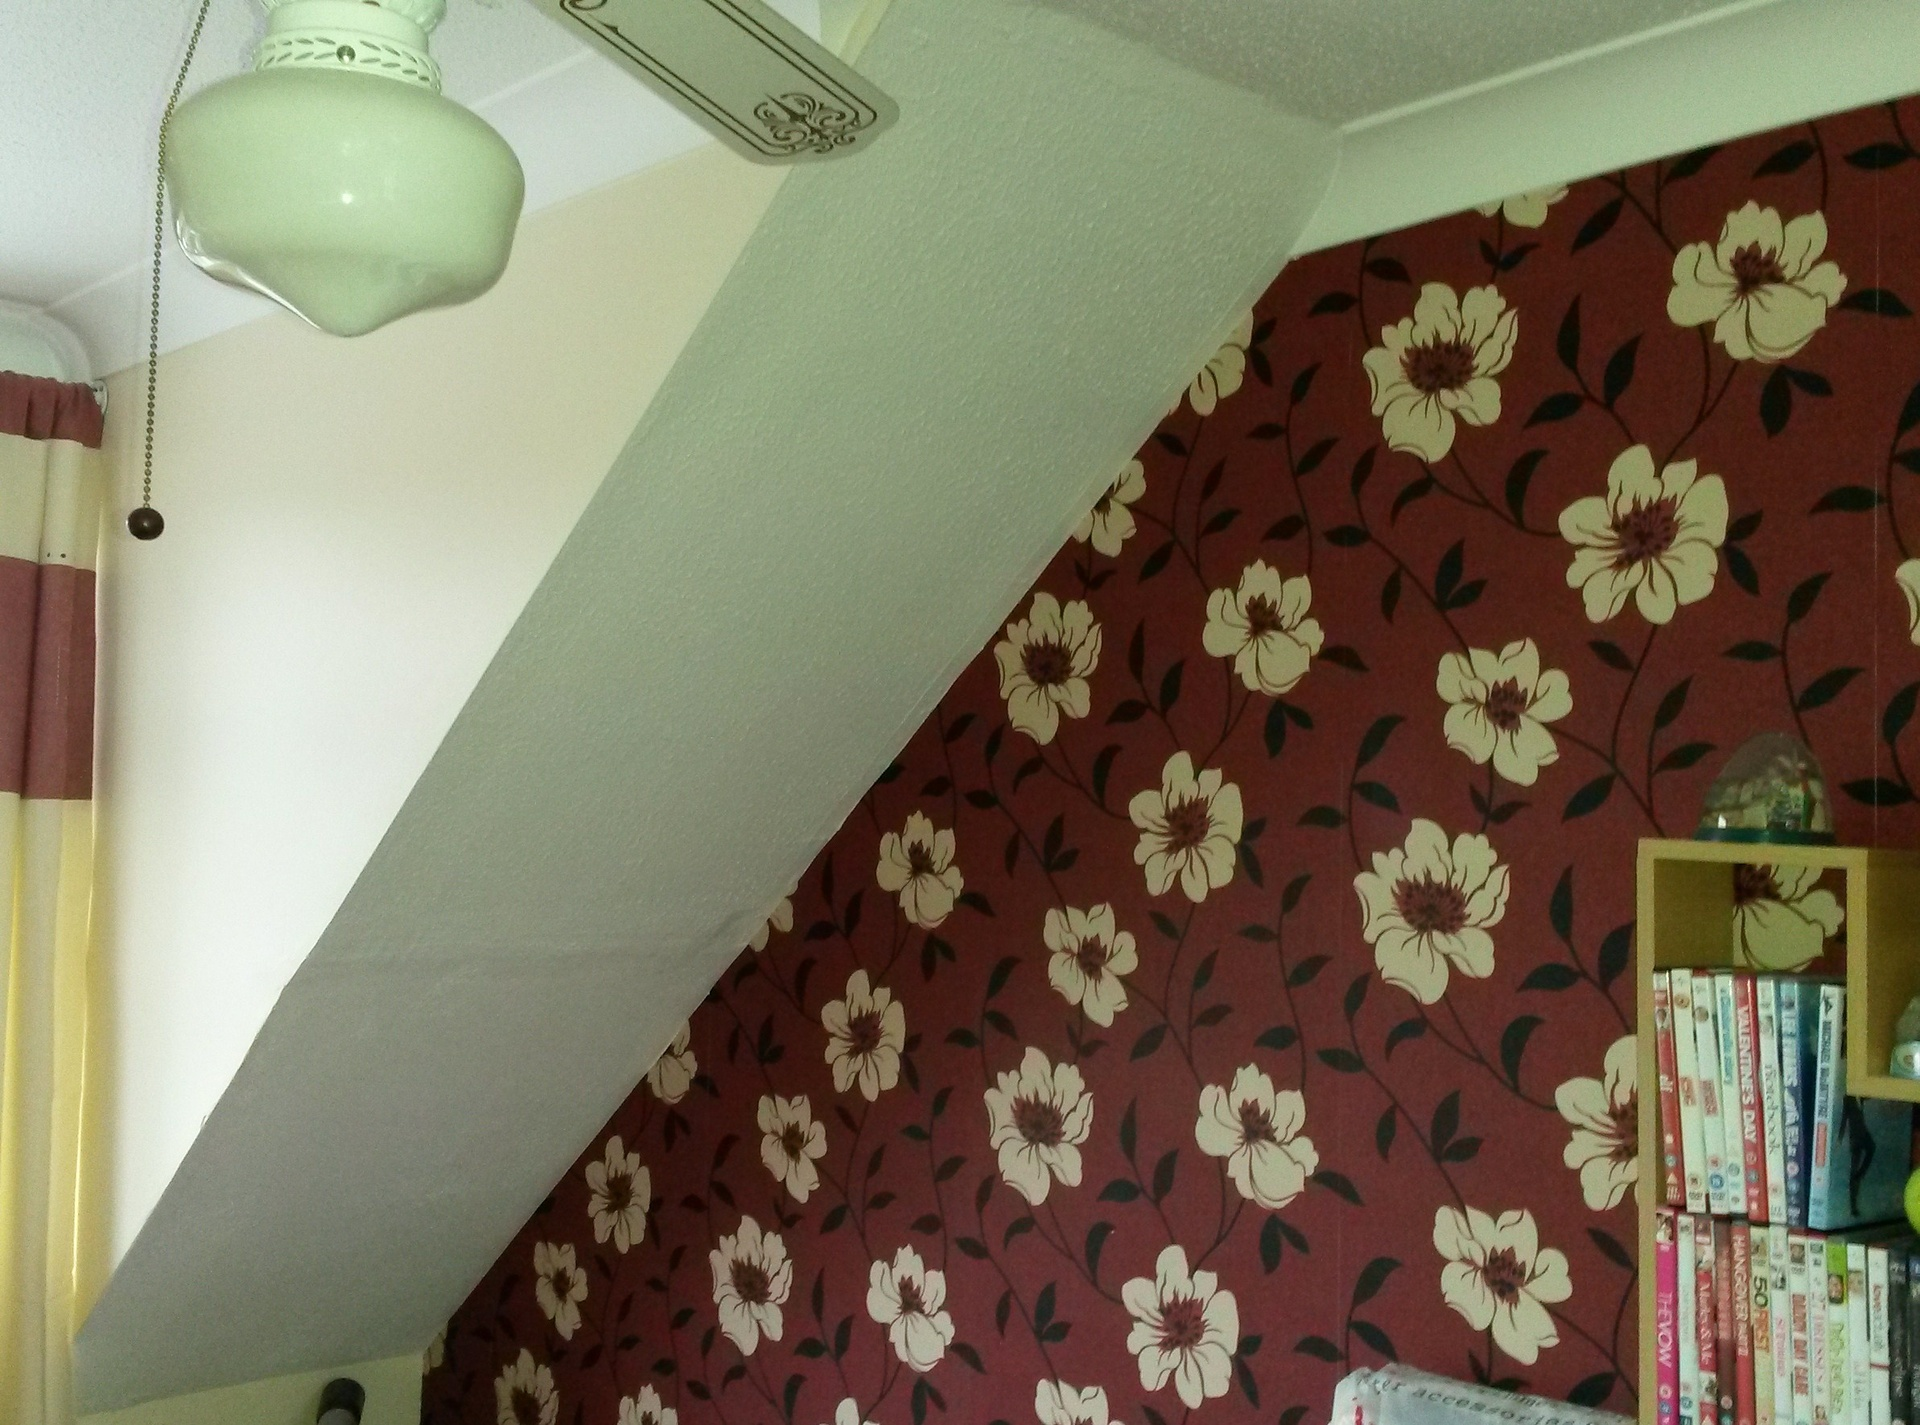 Warm red flowery wallpaper to warm up a bedroom.